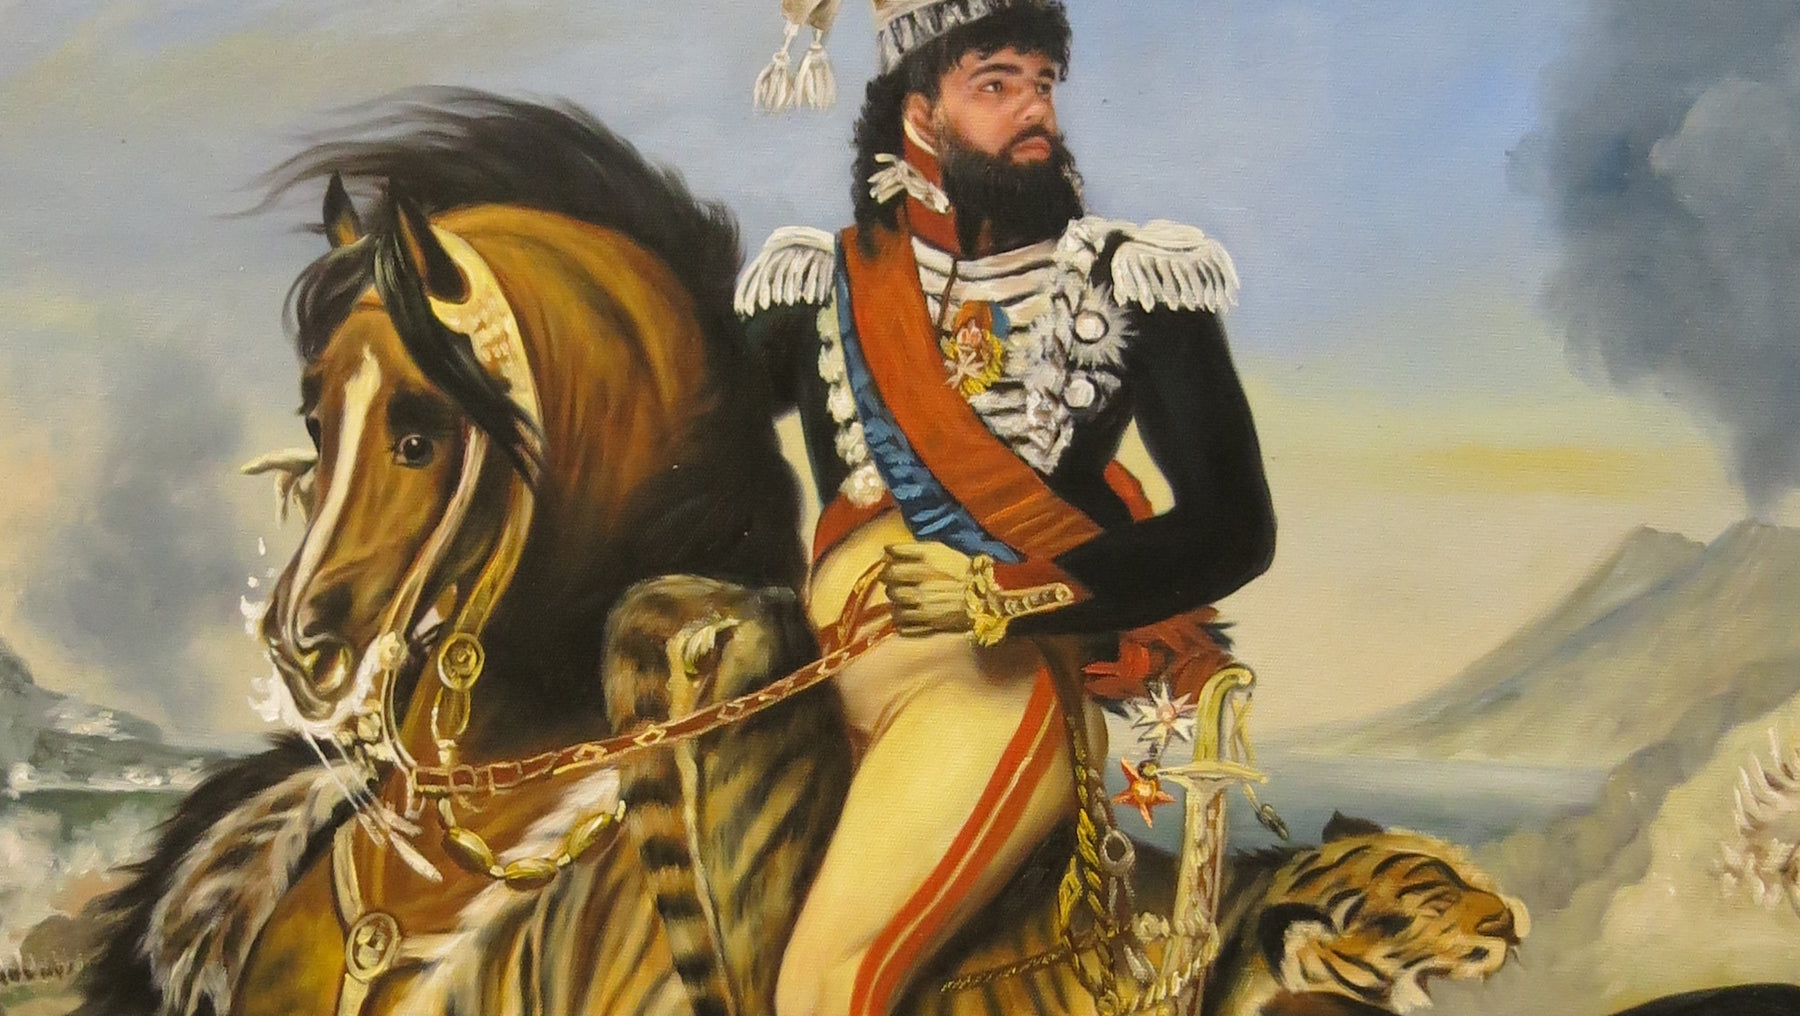 nobilified hand painted oil portraits of yourself as royalty